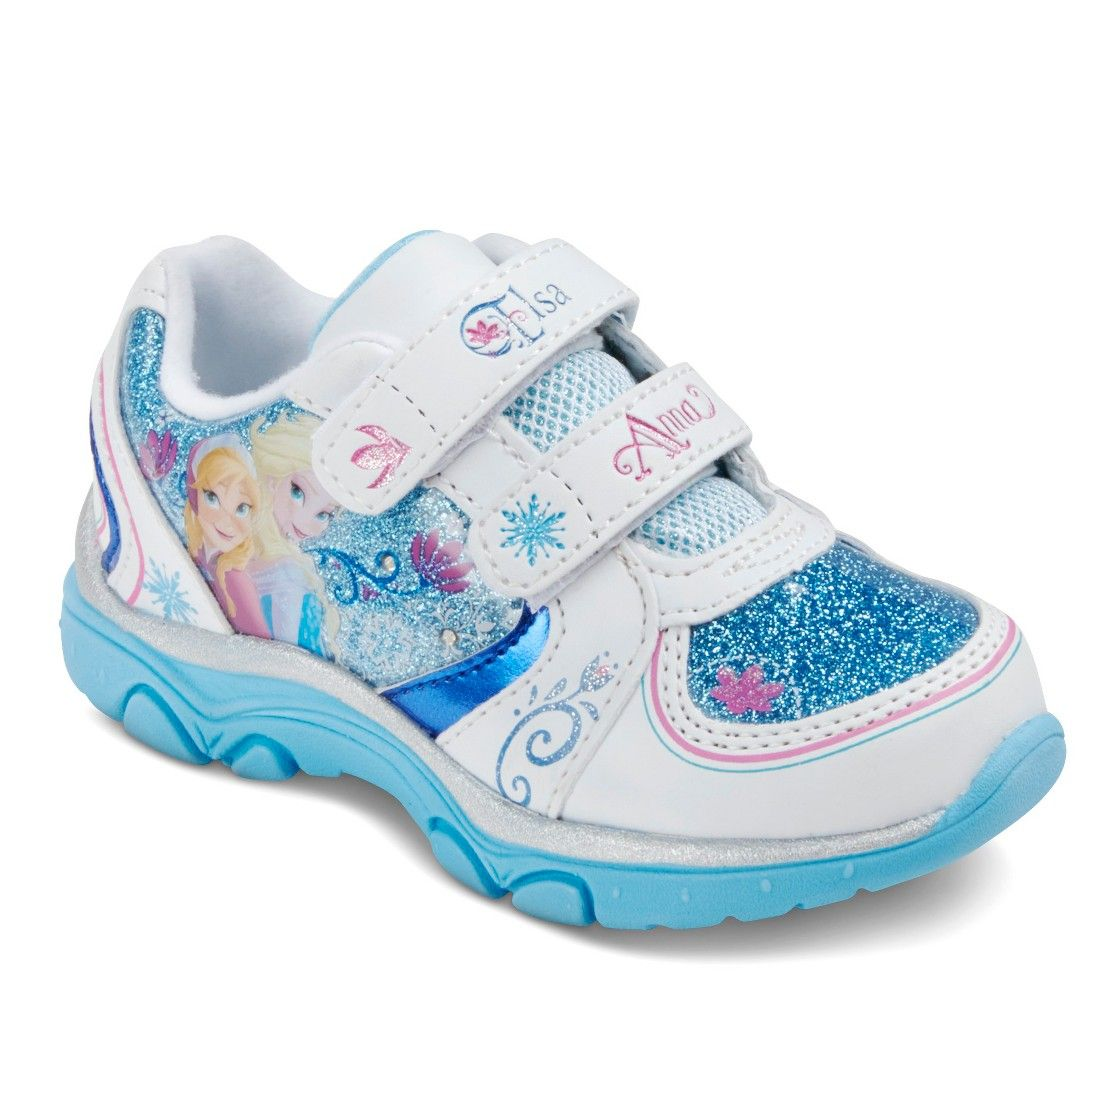 Disney  Toddler Girl's Frozen Light Up Shoes - Assorted Colors